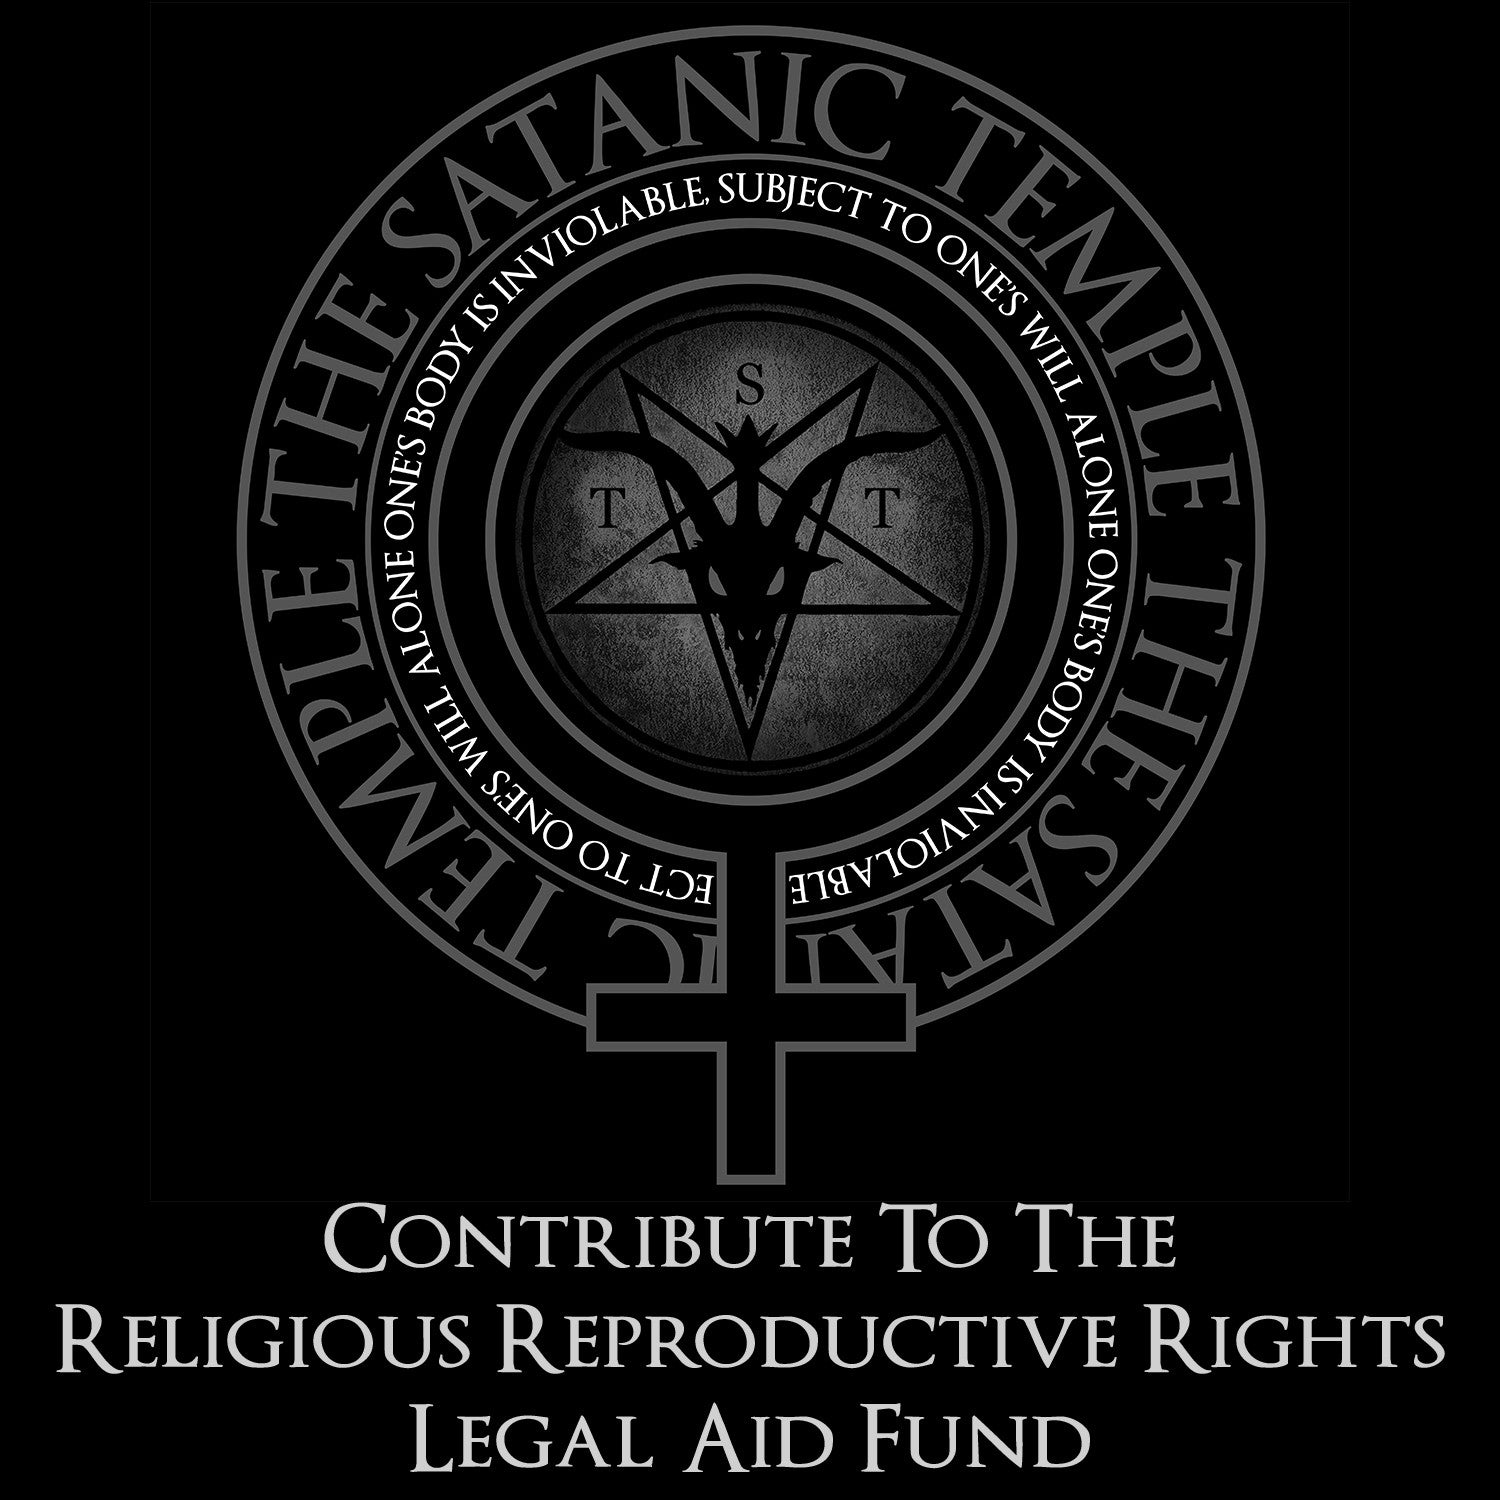 The satanic temple shop contribute to the religious reproductive rights legal aid fund biocorpaavc